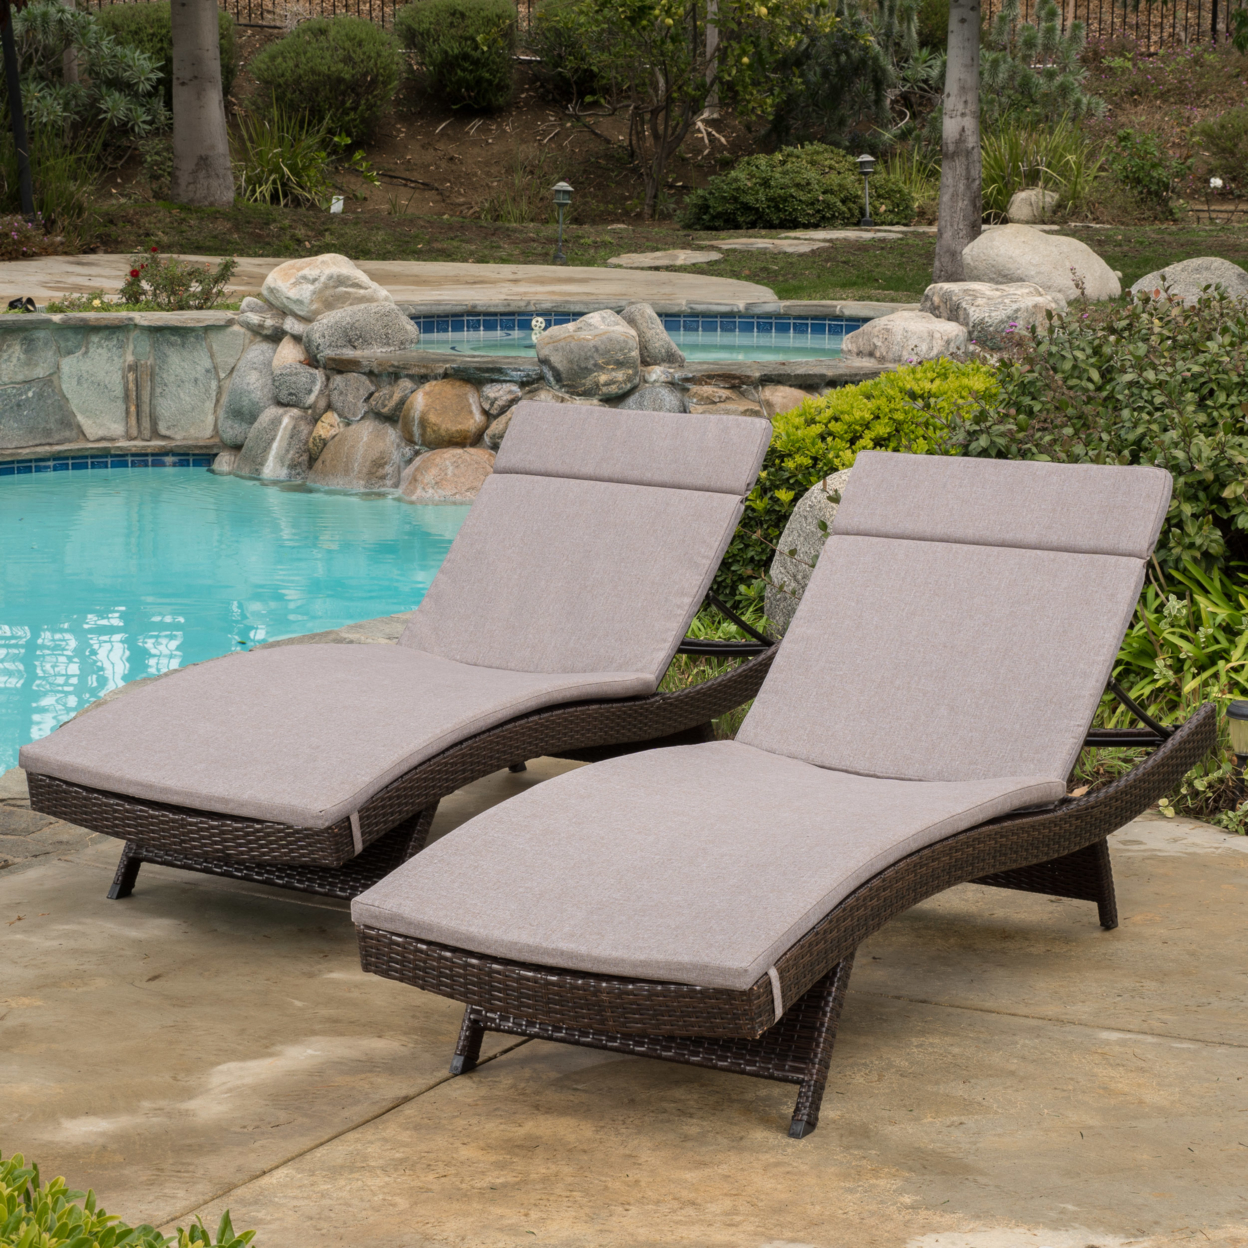 Lakeport Outdoor Adjustable Chaise Lounge Chairs w/ Cushions (set of 2) (3)